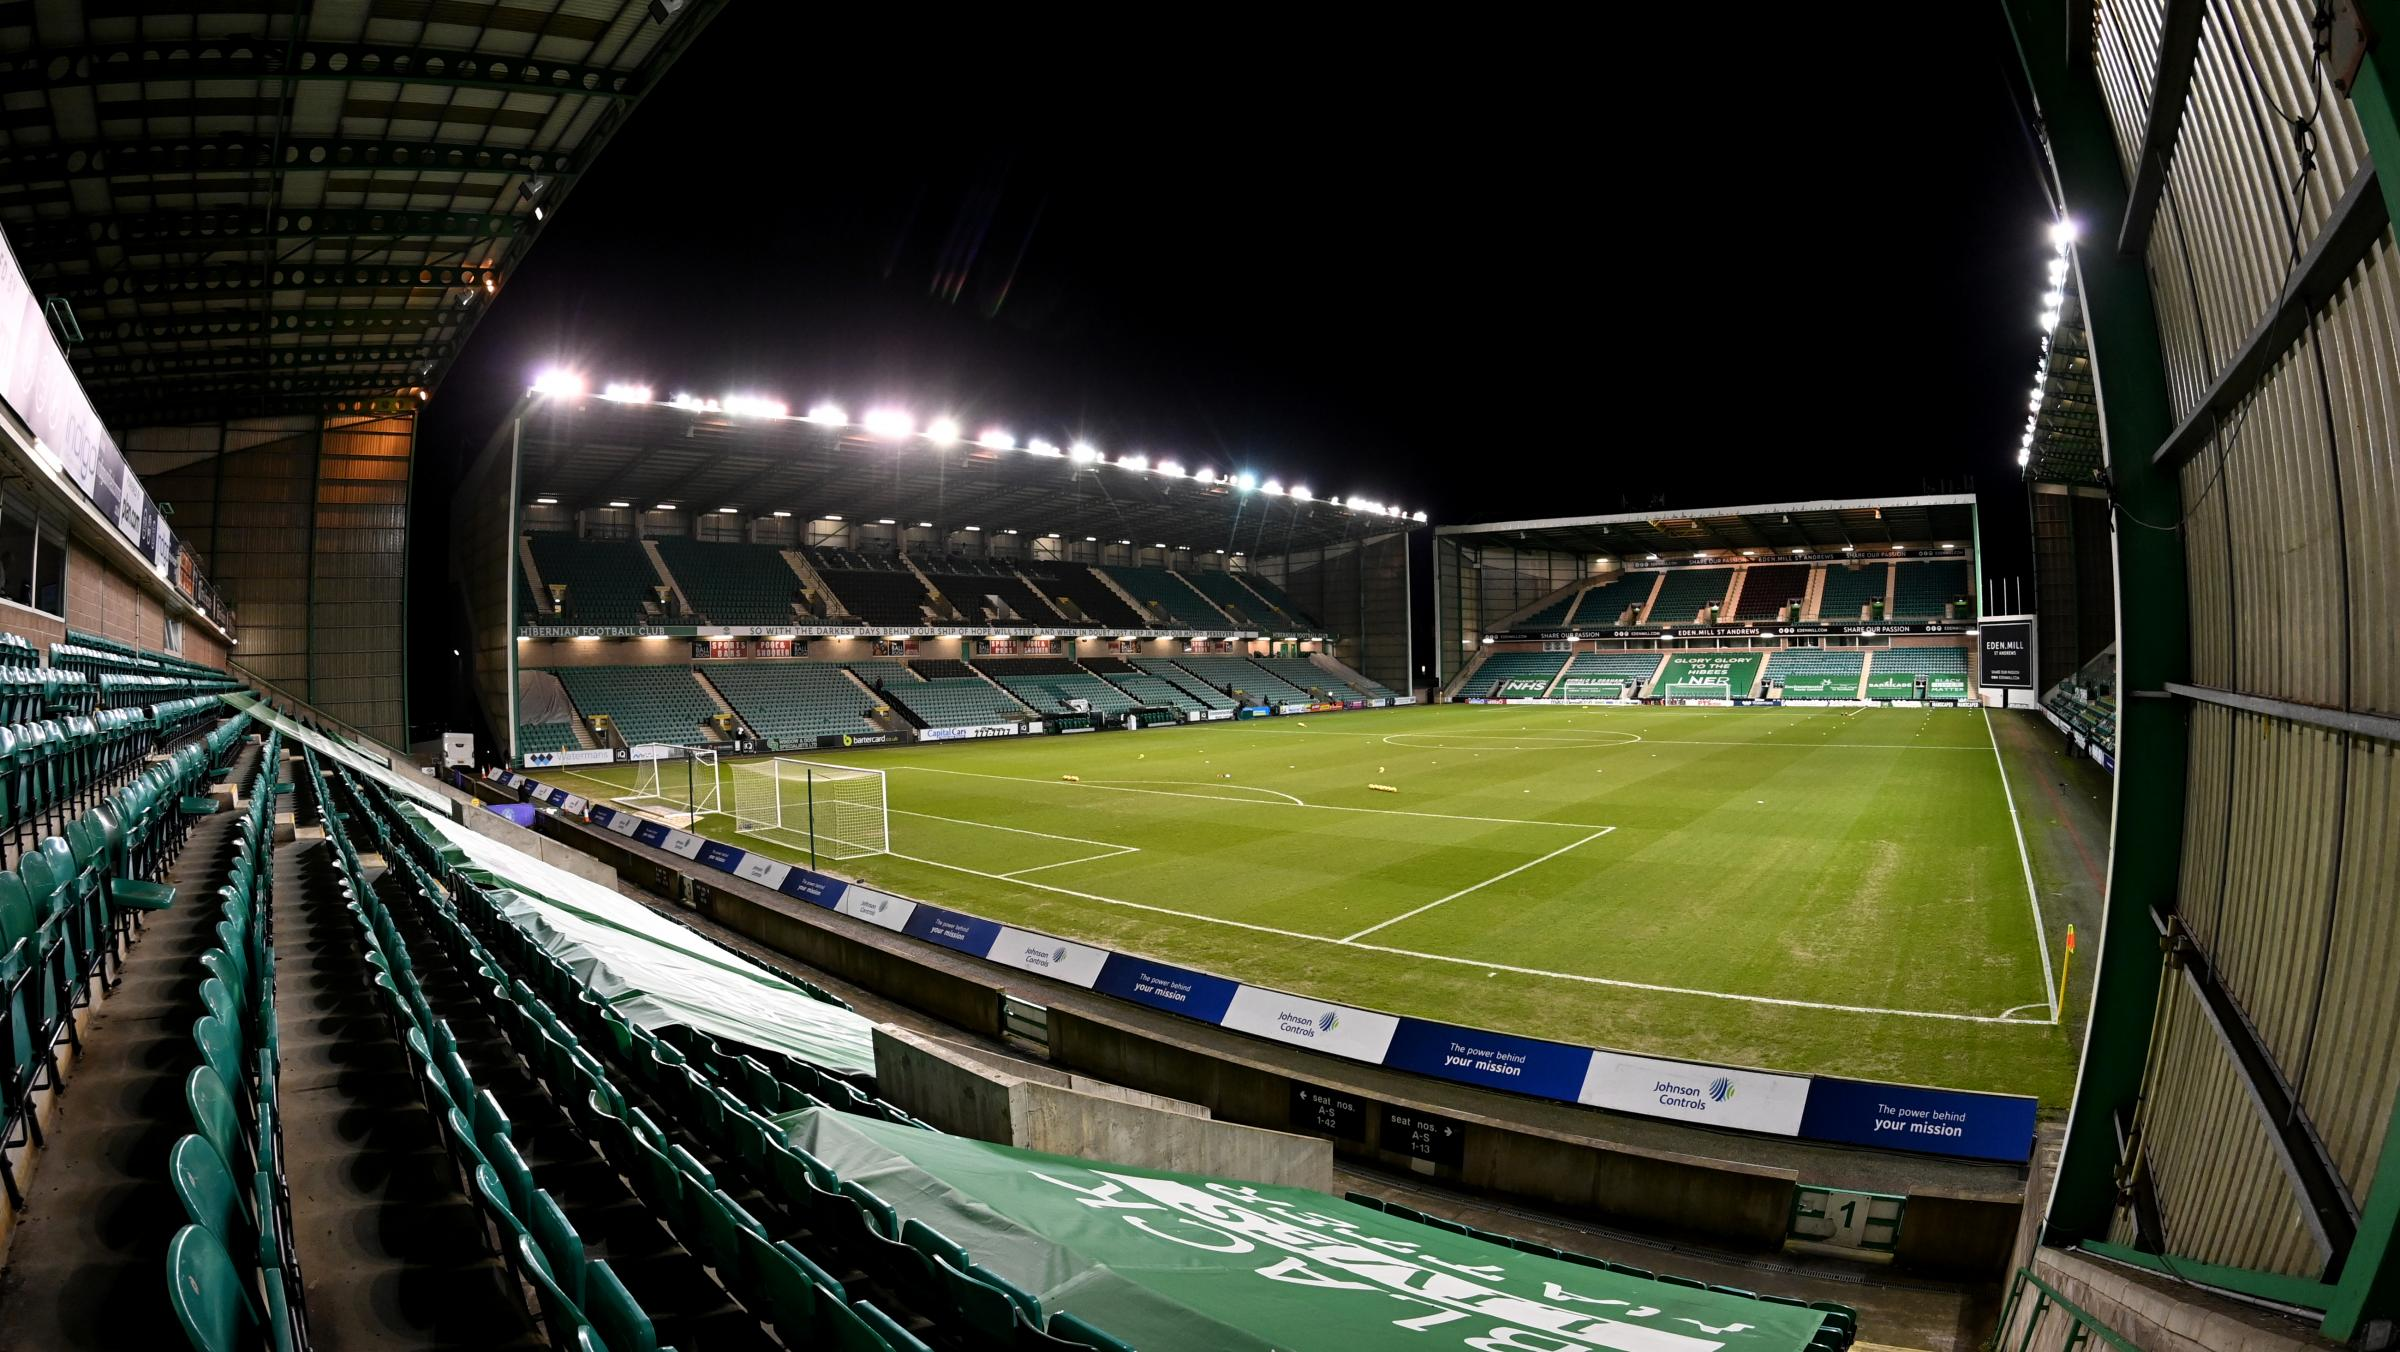 SPFL turned down request for additional Covid testing, say Hibernian